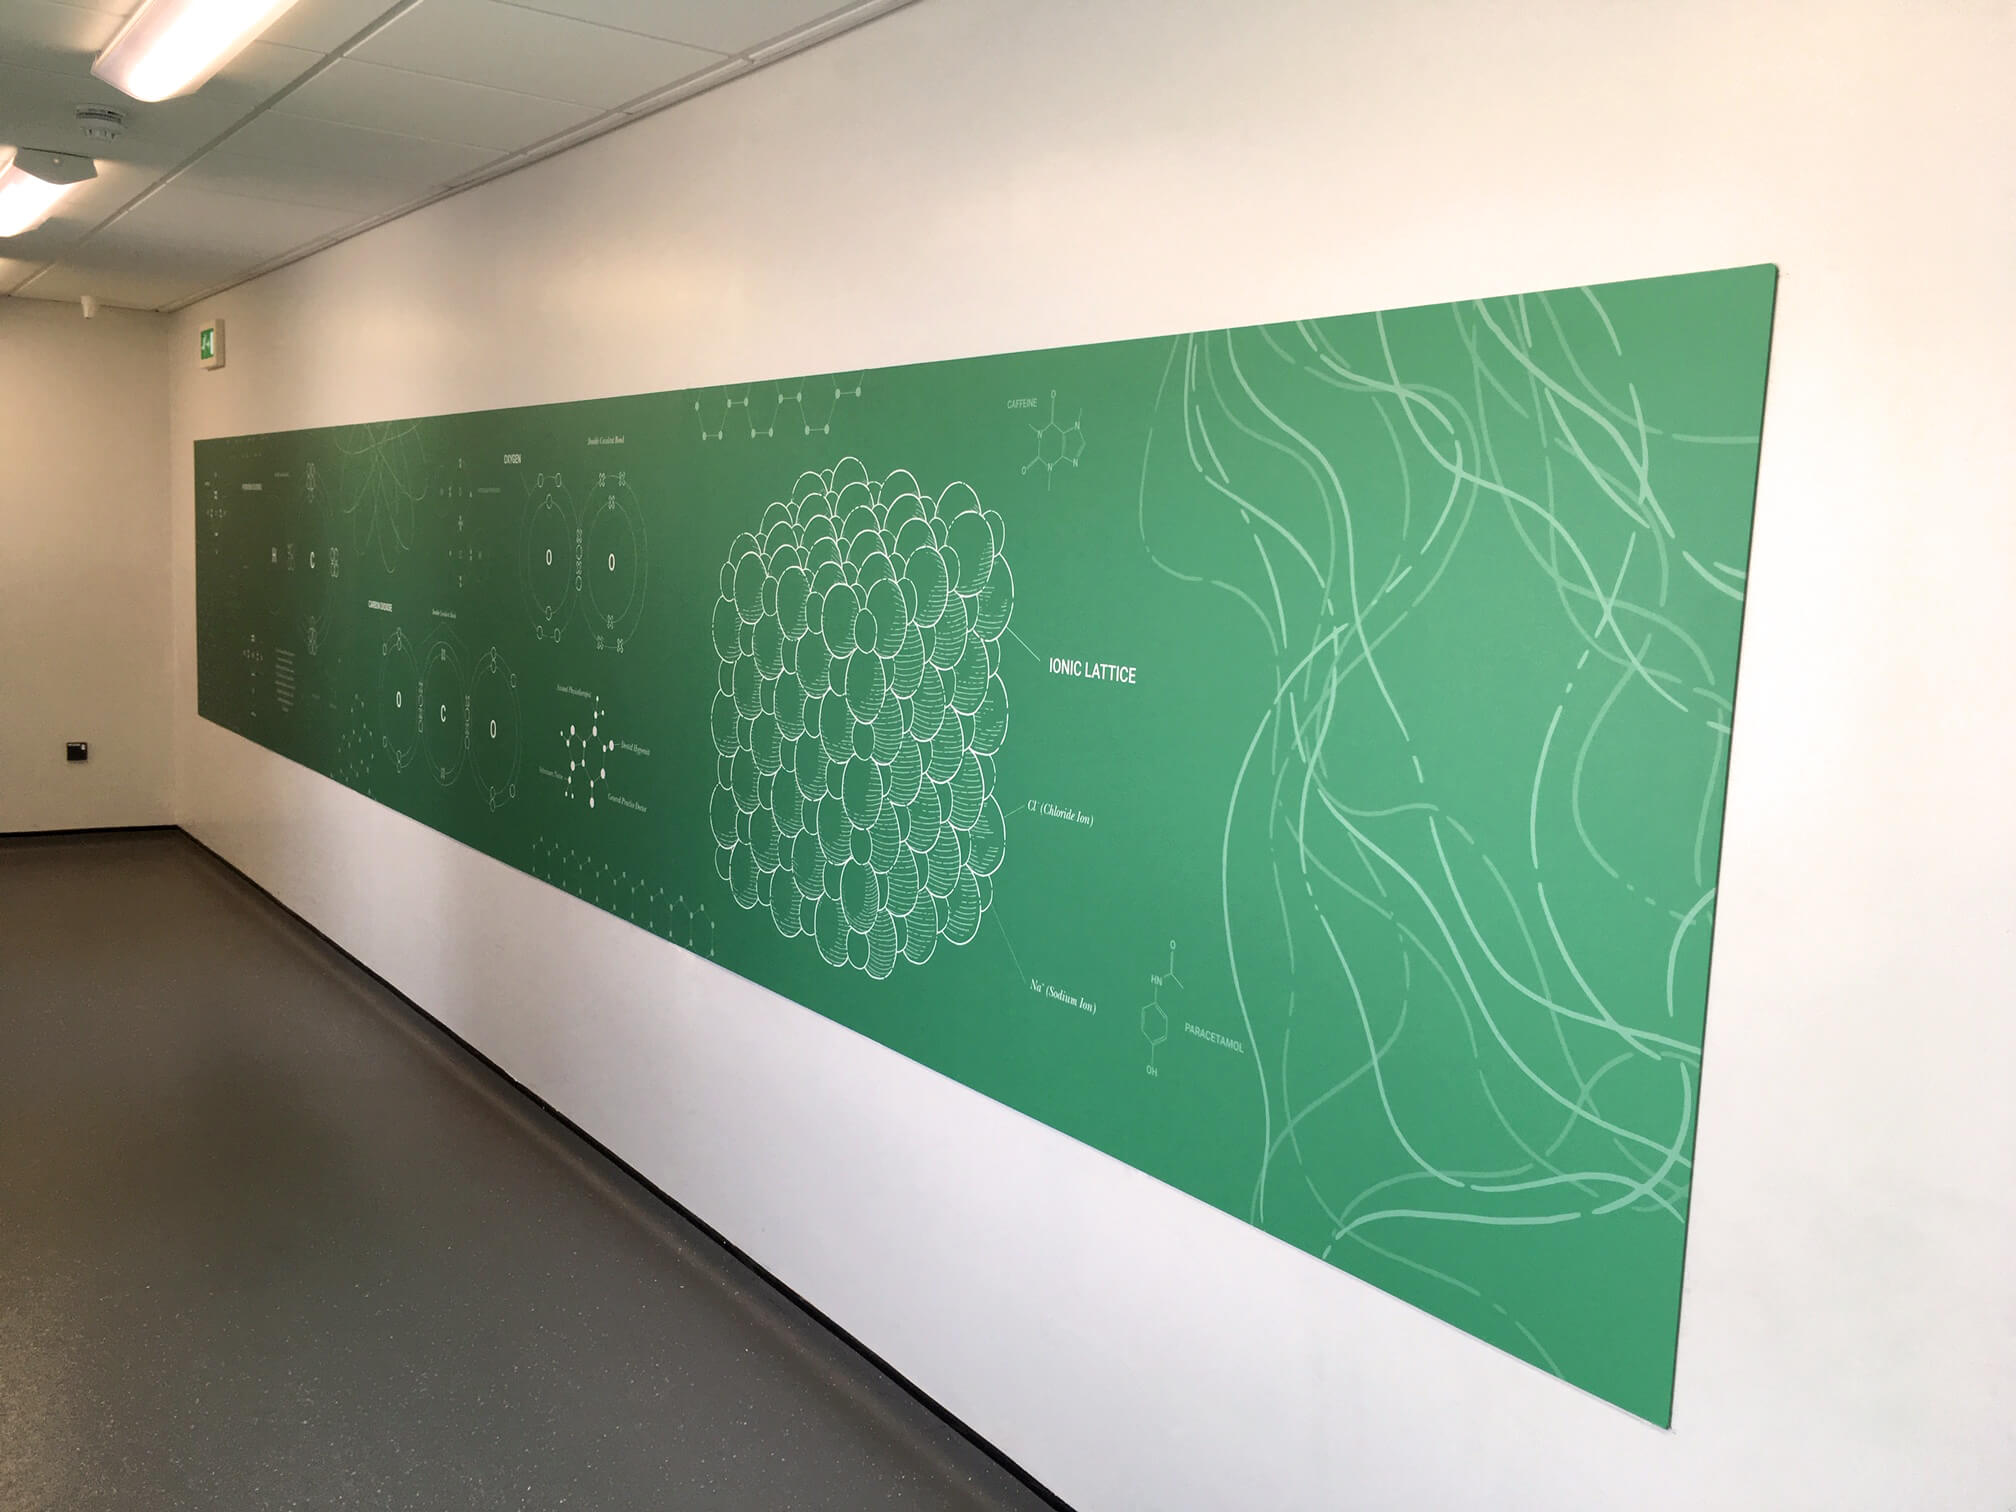 Creative wall graphics for school | School wall murals | Birmingham, Coventry, Midlands, UK